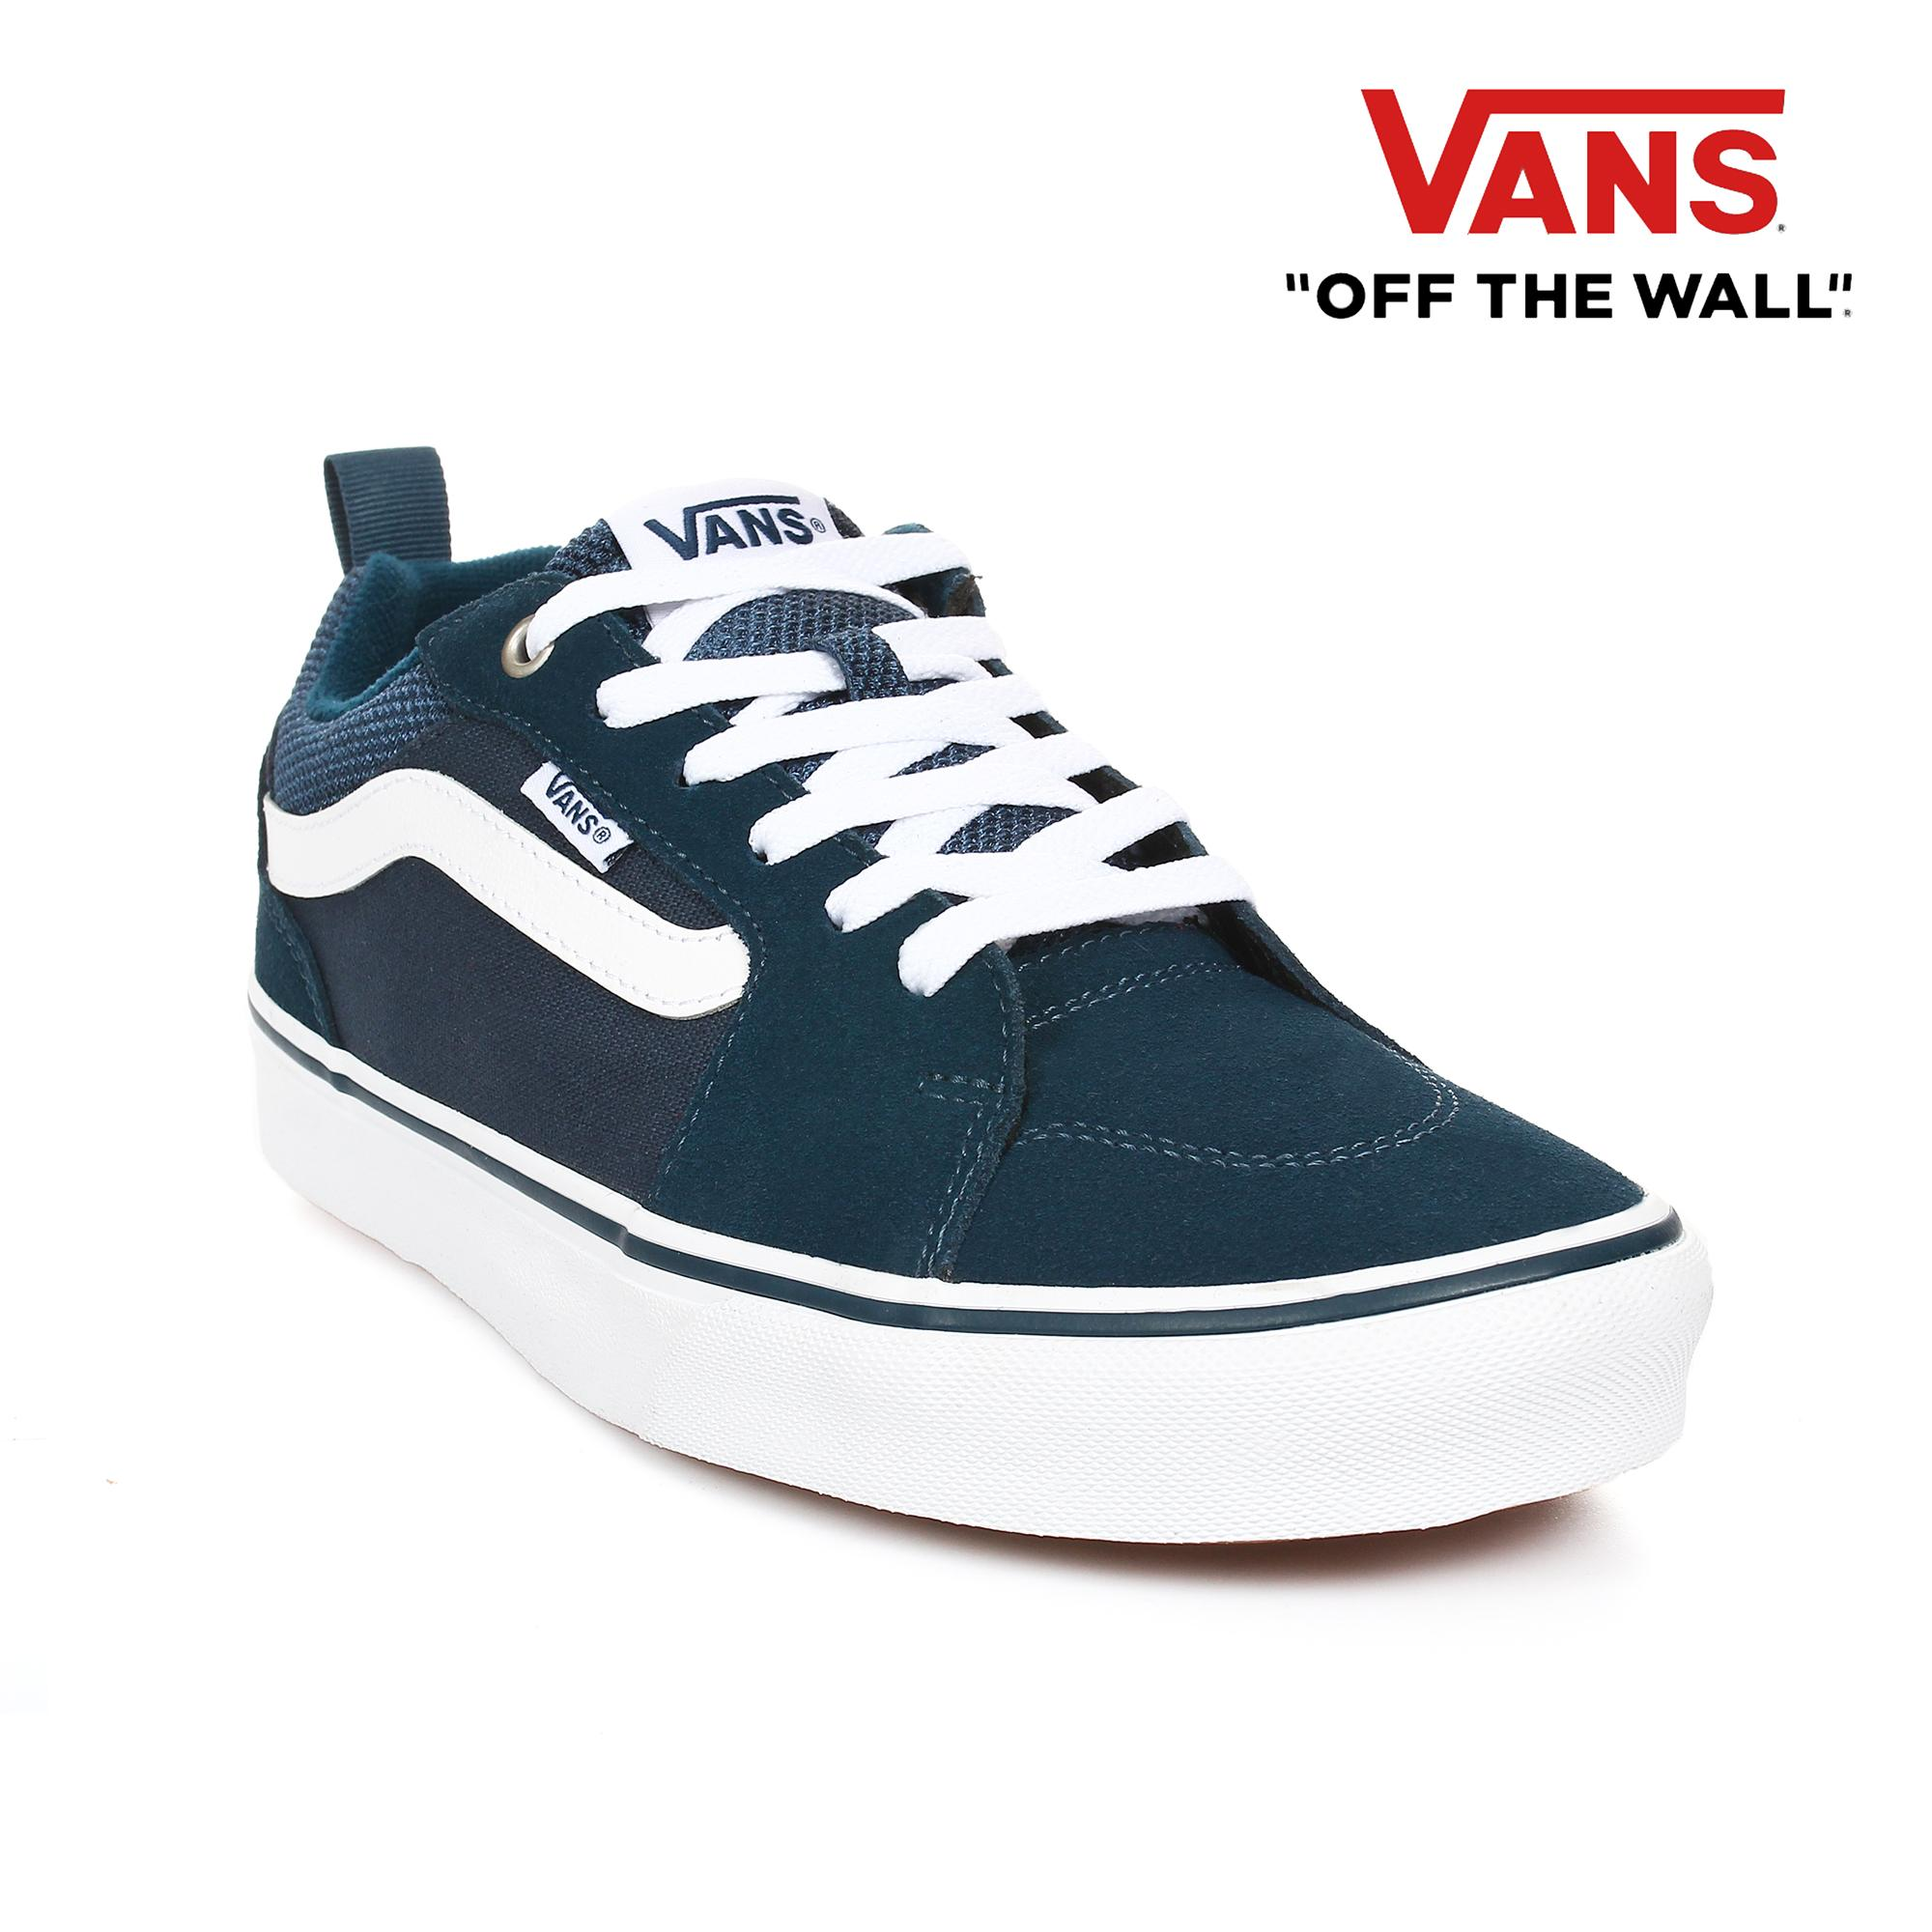 60a6923bb135 Vans Shoes for Men Philippines - Vans Men s Shoes for sale - prices ...